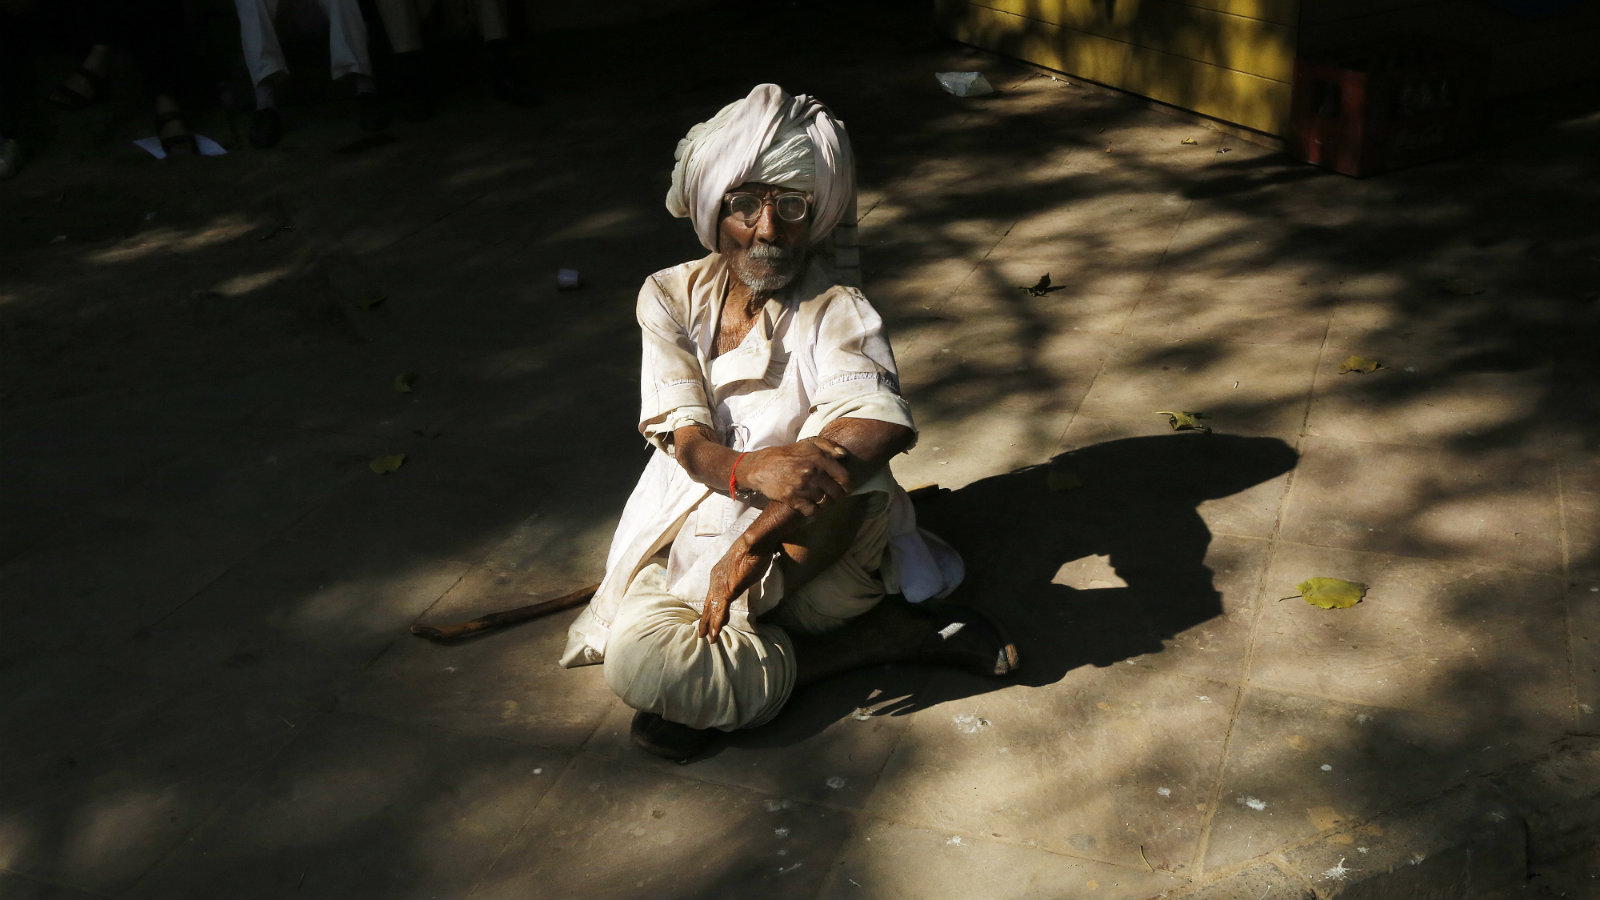 Indian elderly looking man sit during a protest demanding a universal old age pension of amount INR 2000 (32.7USD) a month for people above 60 years in New Delhi, India on 28 November 2013. According to the current government scheme people above the 60 years of age getting INR 200 (USD 3) per month. Pension Parishad organization and 150 organizations from all over India have given their support to this protests and to their other demands.